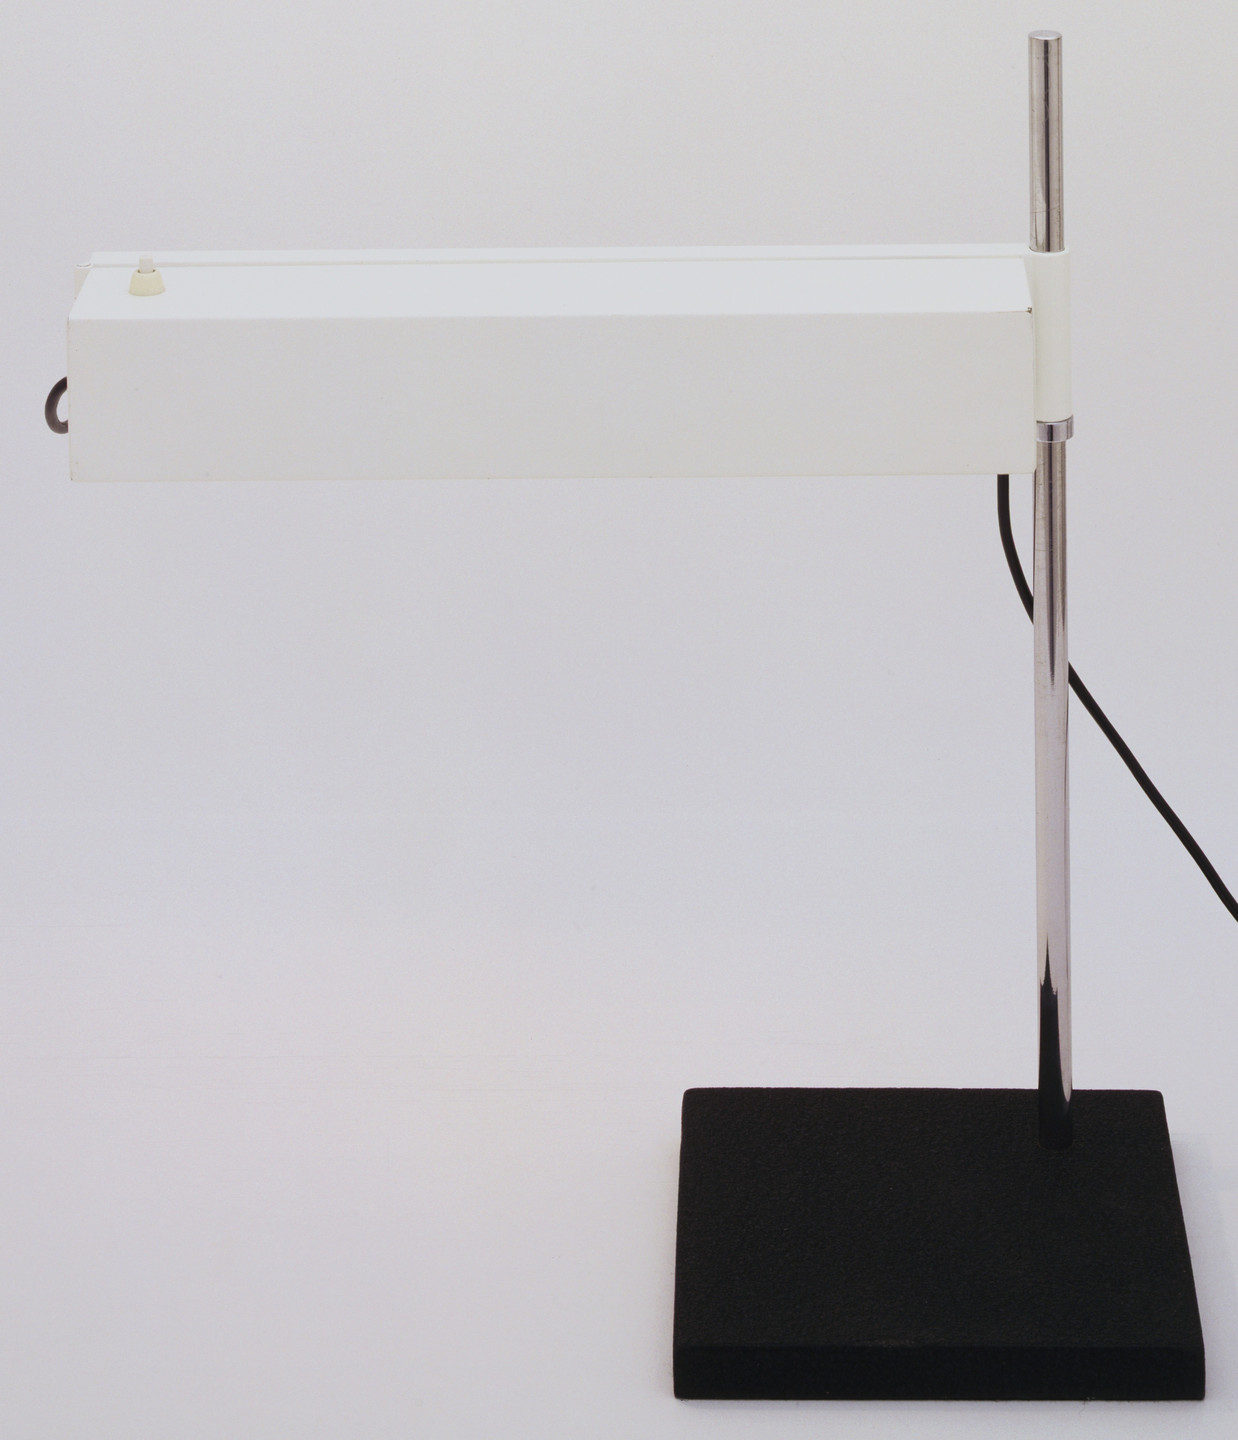 Dieter Wackerlin. Desk Lamp. 1966